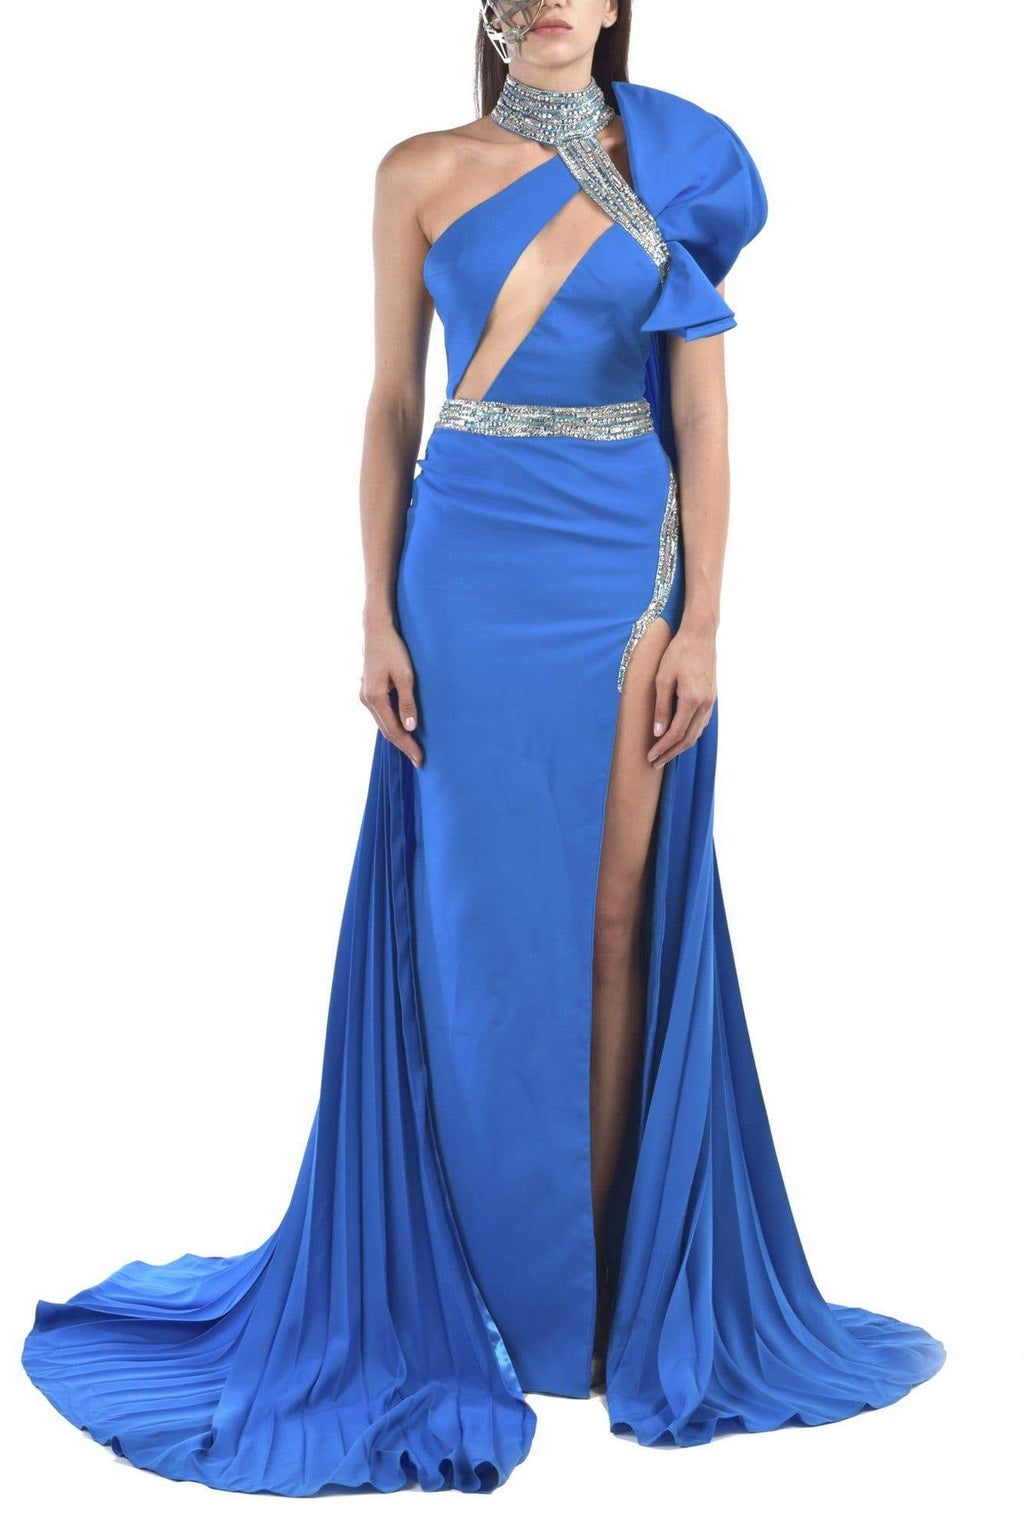 Crepe Blue Embroidered Dress With Pleated Beckline Cape - BYTRIBUTE